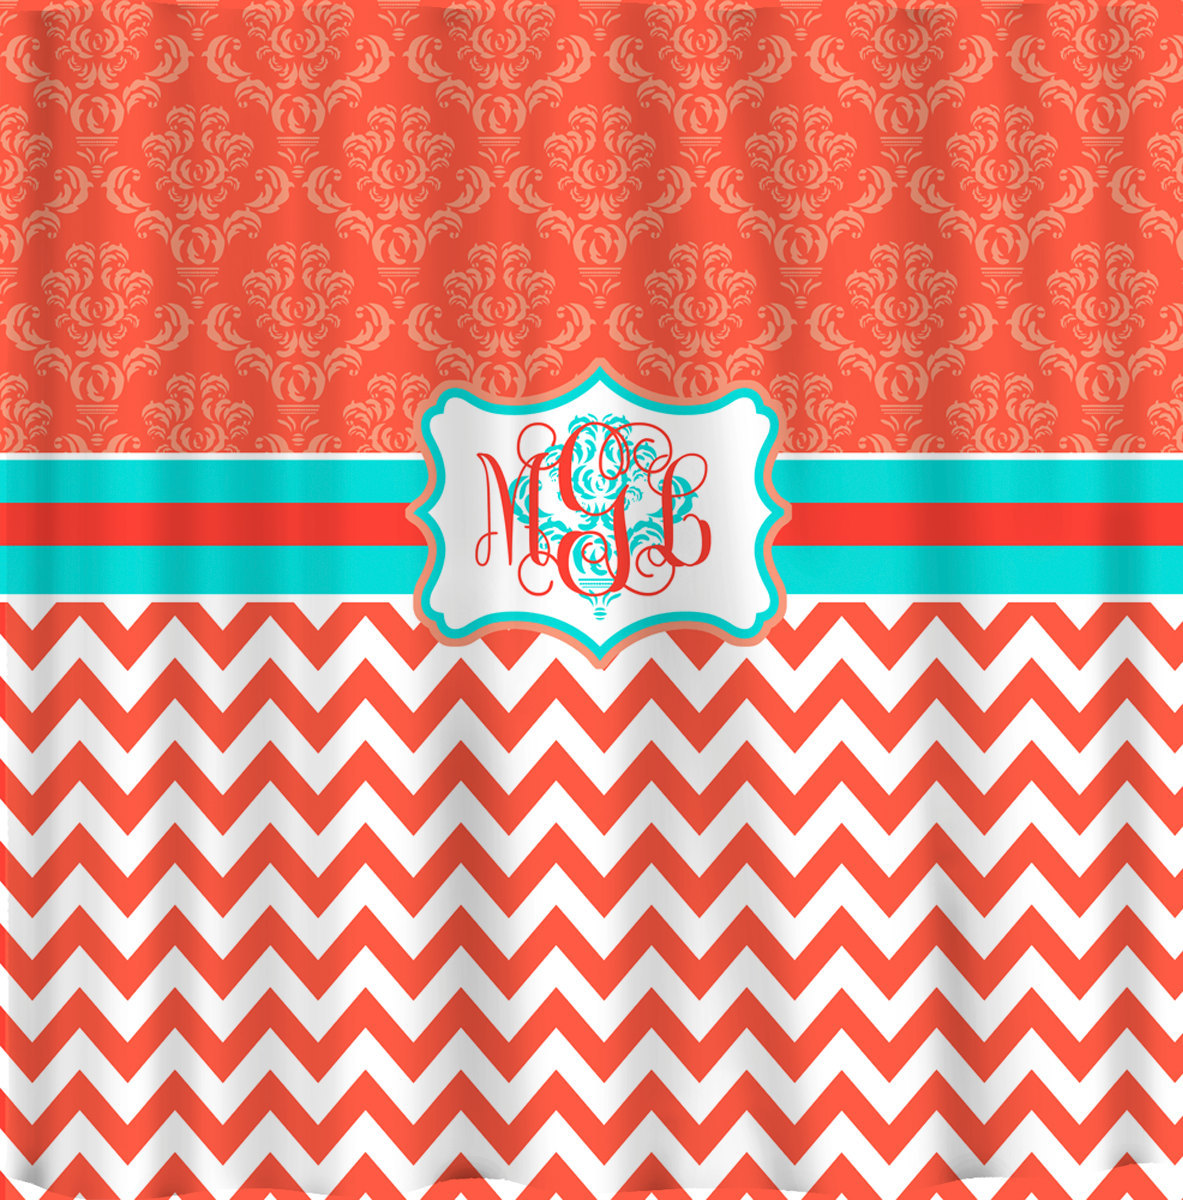 Personalized Shower Curtain -Damask and Chevron Coral and Turquoise - Available